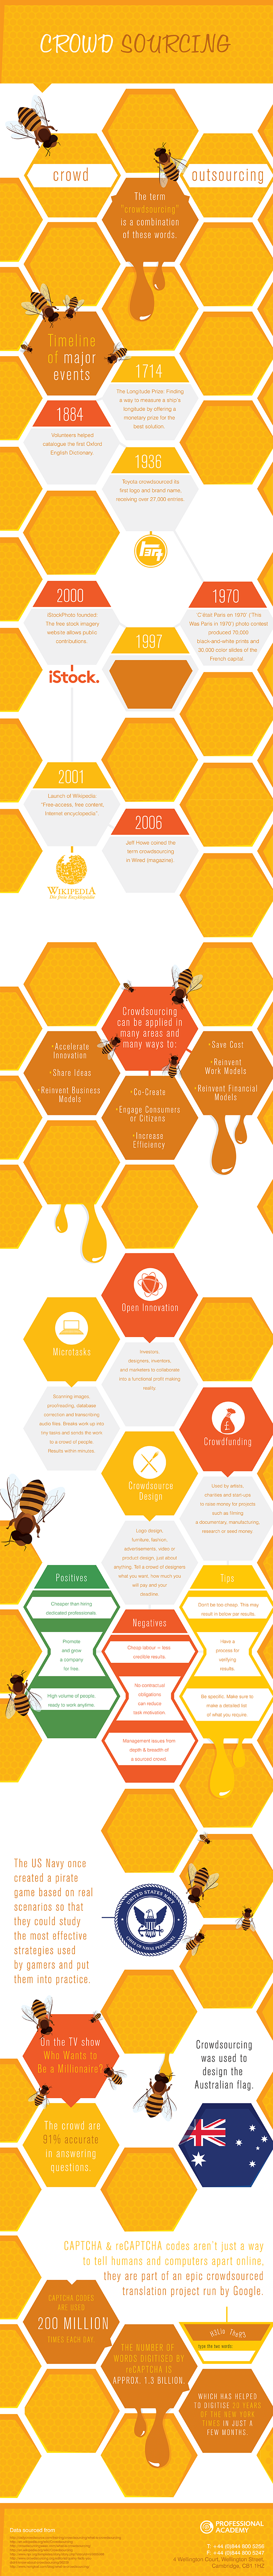 Crowd sourcing infographic